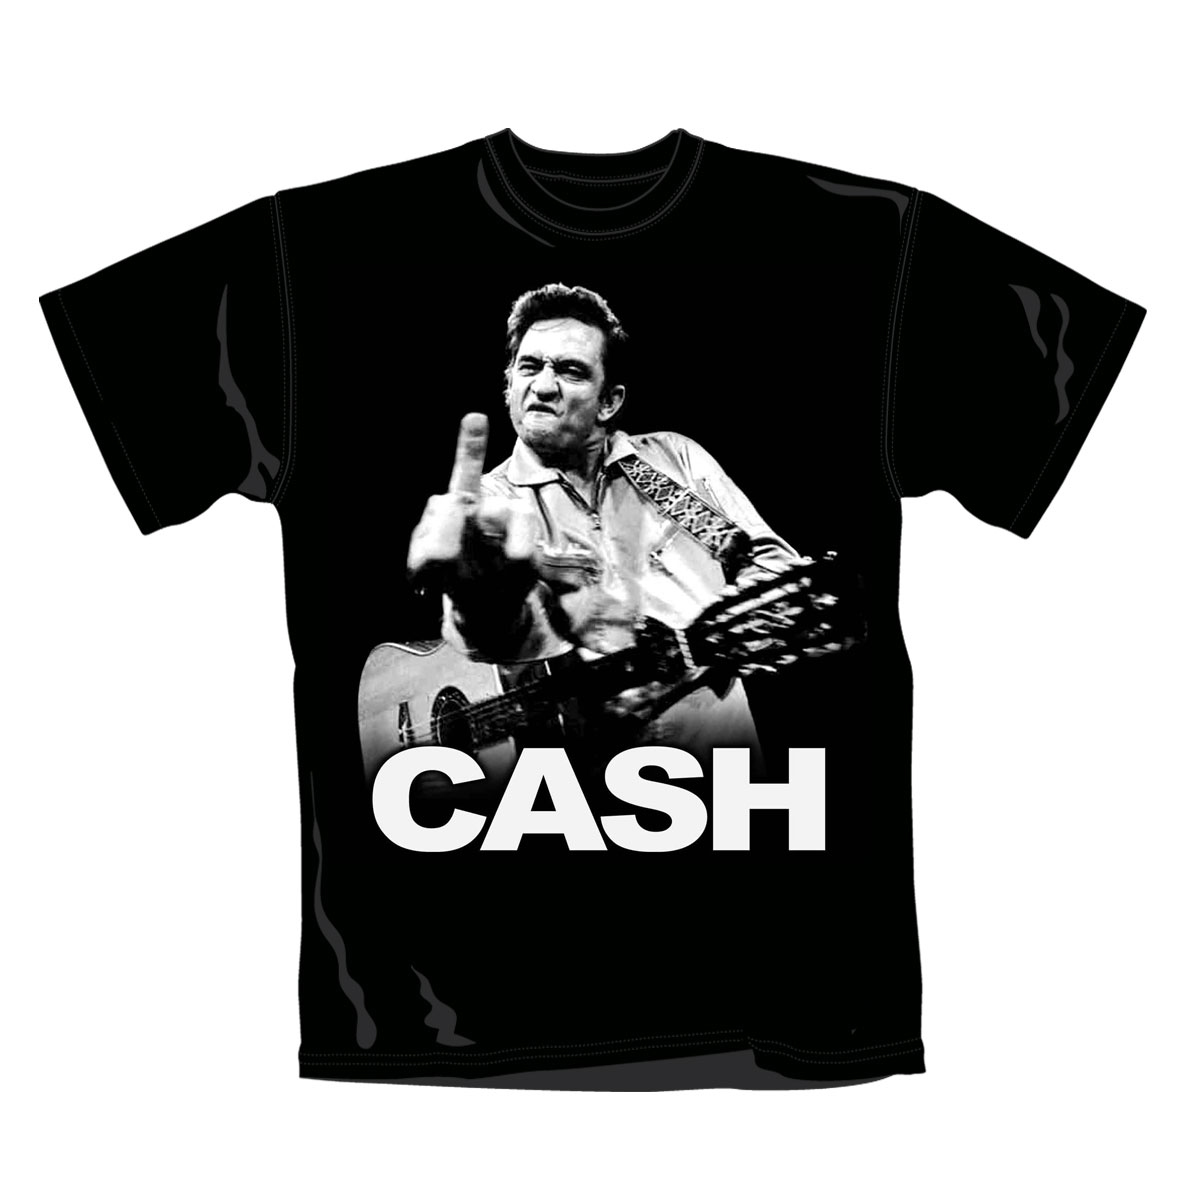 Johnny Cash T Shirt Flippin. Emi Music officially licensed t-shirt.